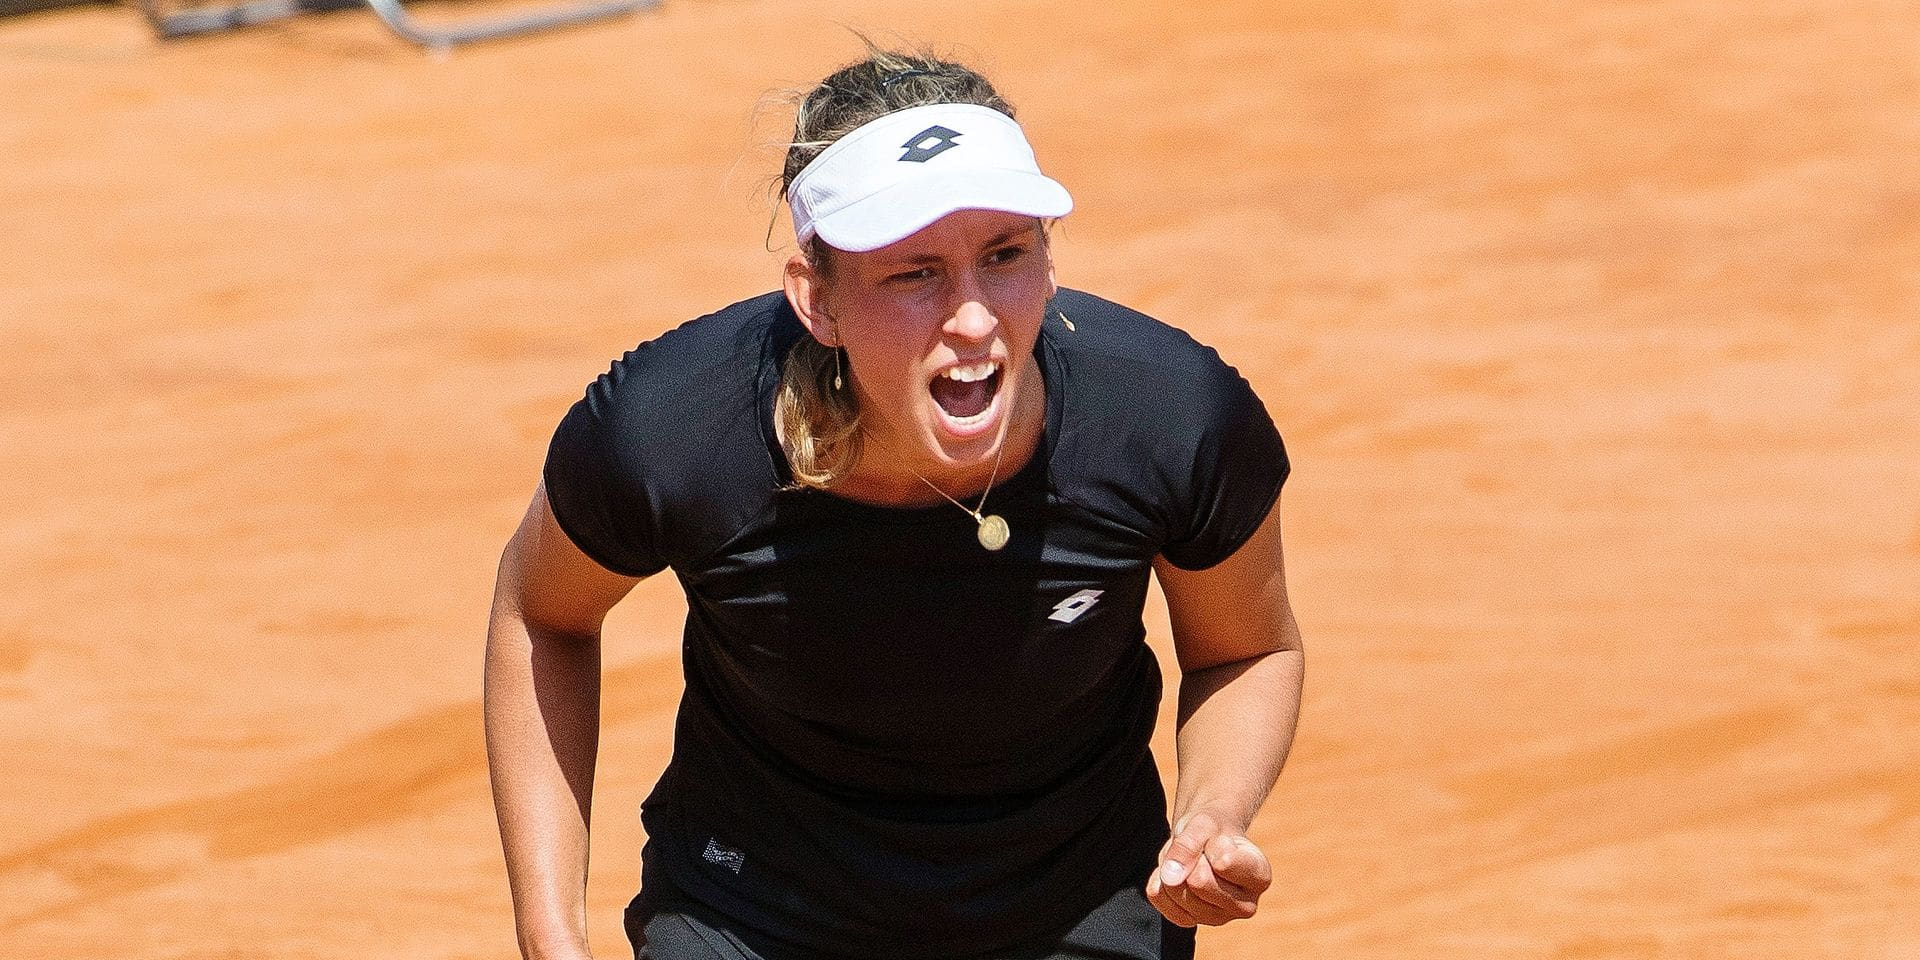 Belgian Elise Mertens celebrates during a tennis game between Italian Jasmine Paolini (WTA 145) and Belgian Elise Mertens (WTA 17), the first rubber of this weekend's Fed Cup World Group Play Off meeting between Italy and Belgium in Genoa, Italy, Saturday 21 April 2018. BELGA PHOTO LAURIE DIEFFEMBACQ